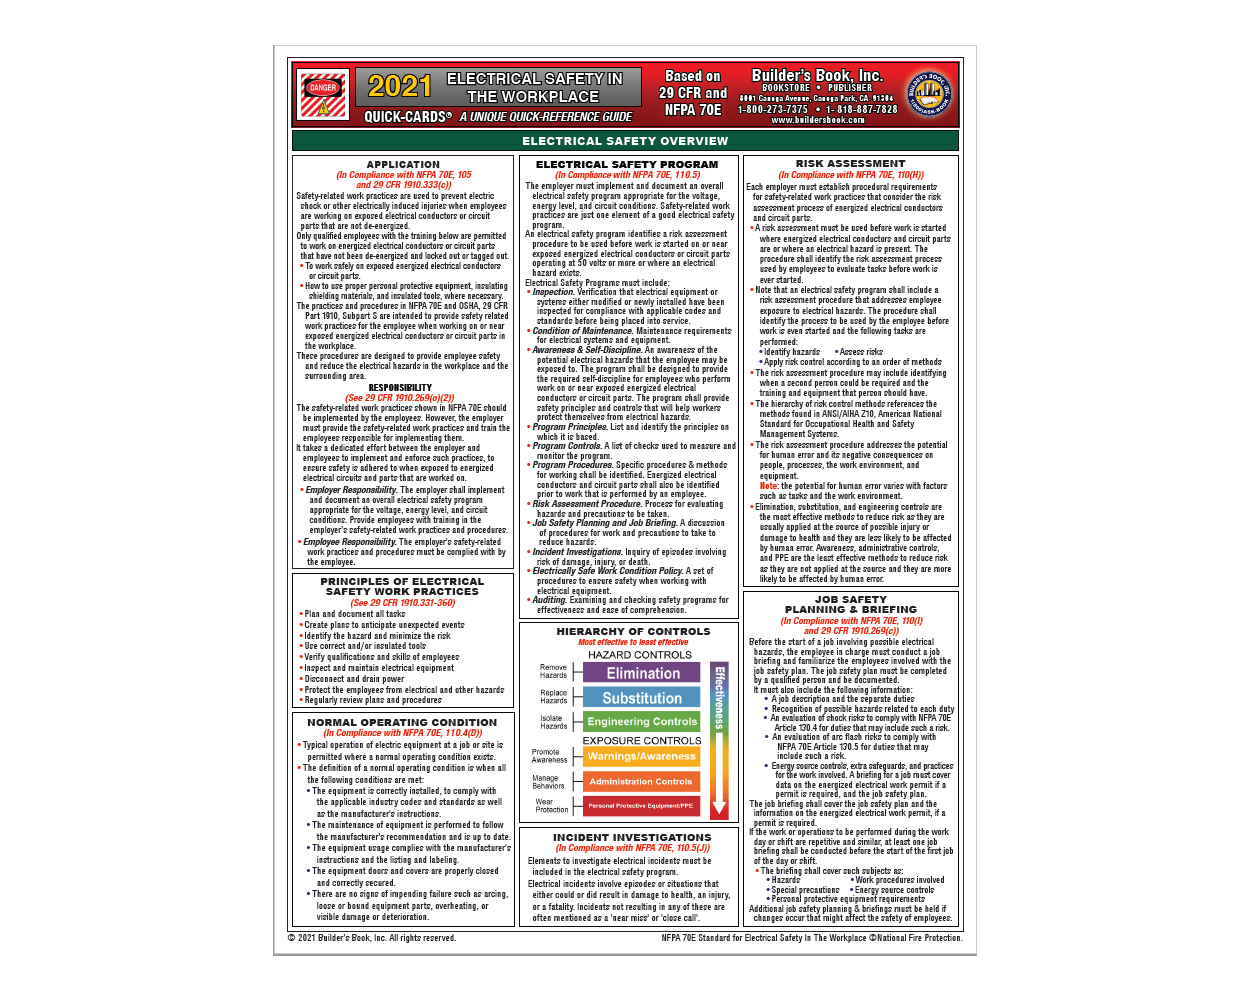 Electrical Safety In The Workplace Quick-Card